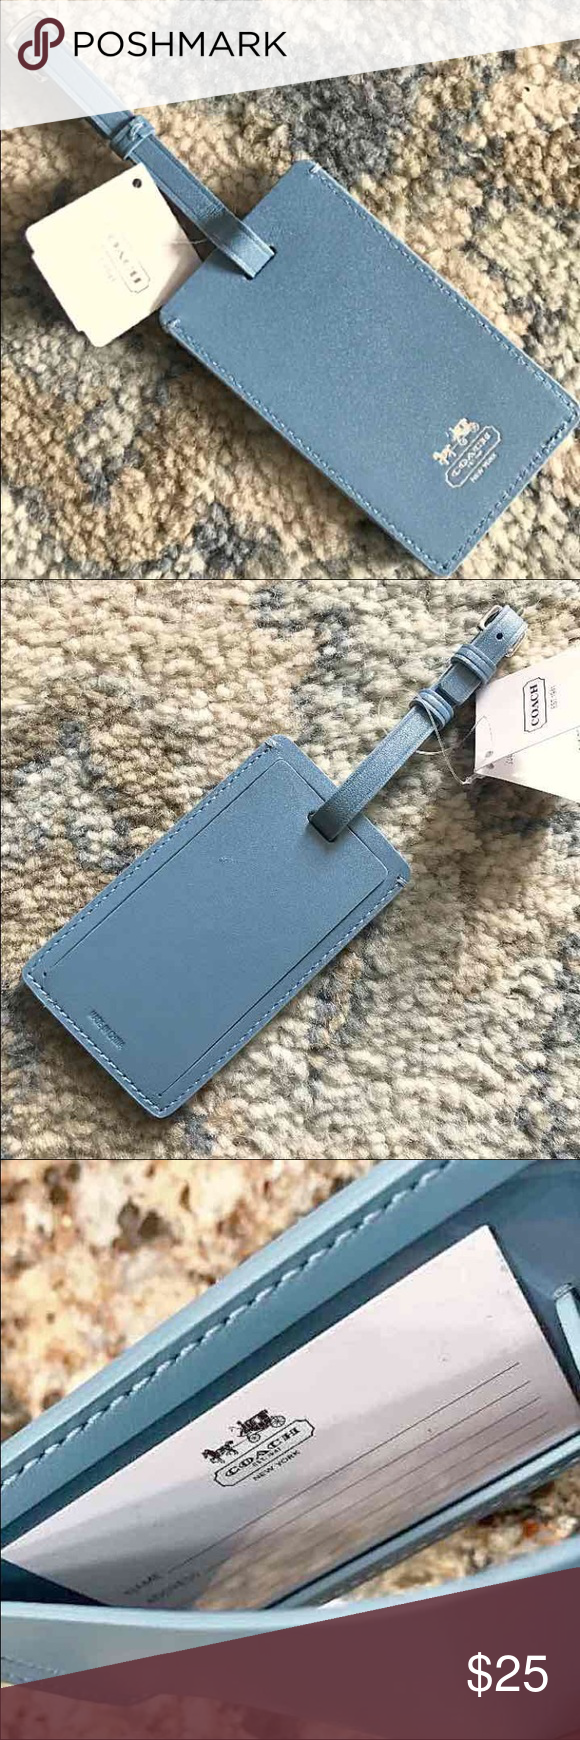 """NWT - COACH Luggage Tag Authentic COACH Luggage Tag - color: Chambray (muted/neutral medium blue) with Coach carriage/name embossed & in silver - size: 4 1/4"""" x 2 1/2"""" - Blank ID Label inside with spaces for name, address, phone, email - NWT Coach Bags"""